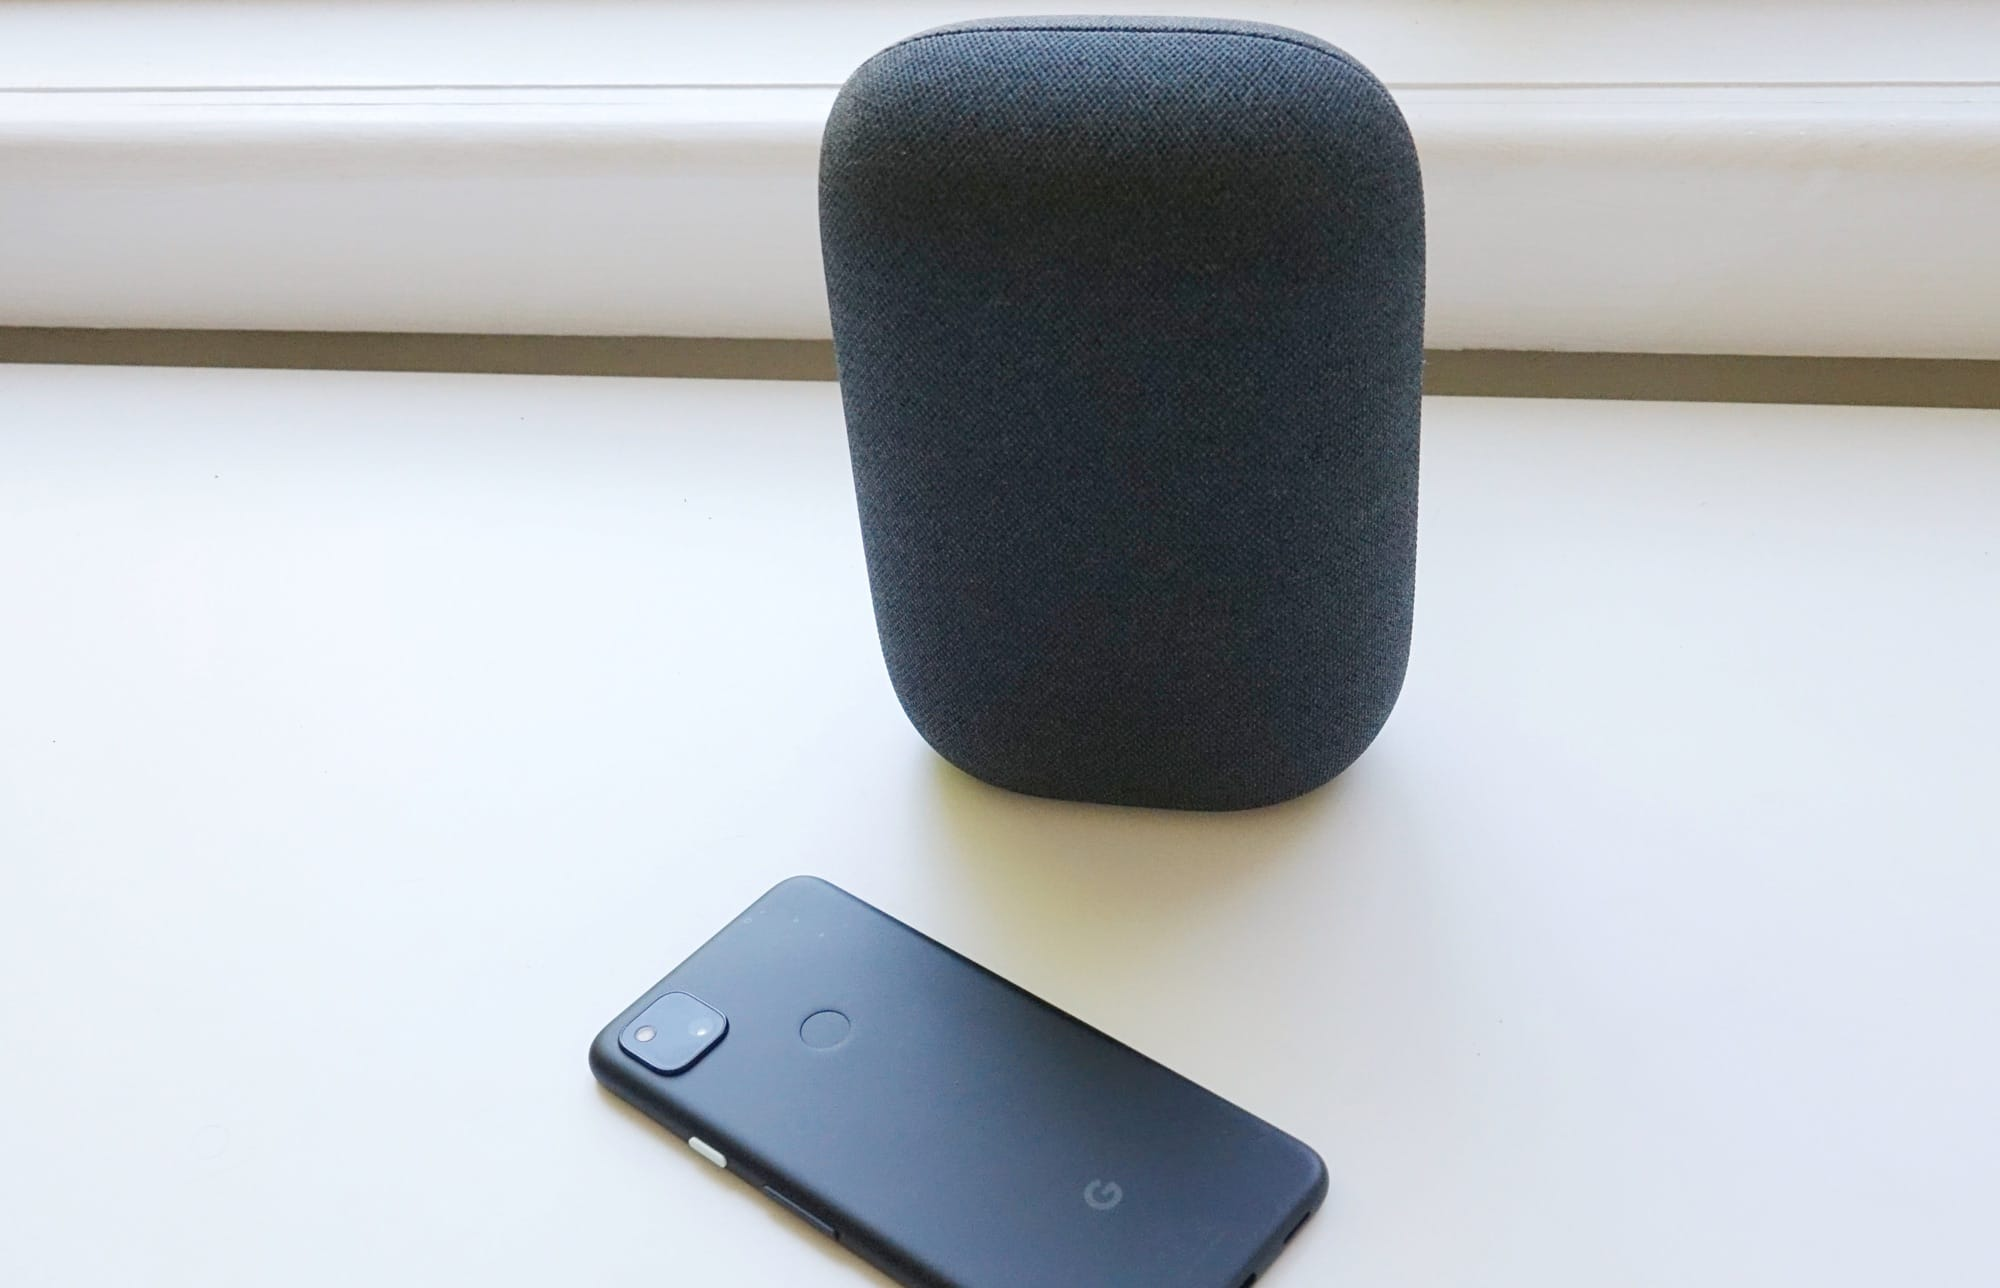 Google Nest Audio with the Google Pixel 4a